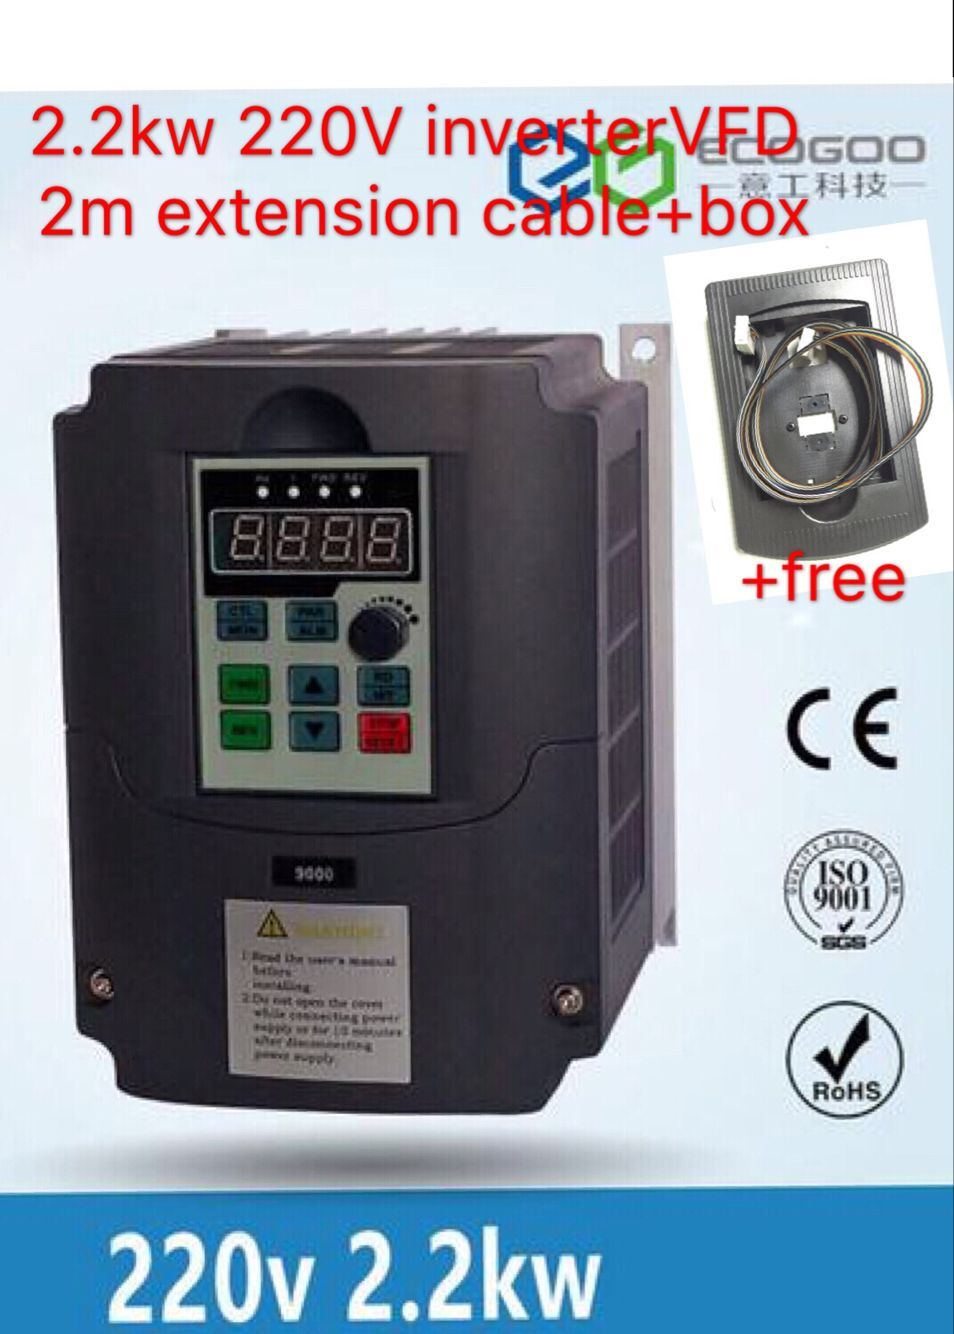 NEW item 2.2KW Variable Frequency Drive VFD Inverter 3HP 220V for CNC router Spindle motor 2017 new item 2 2kw variable frequency drive vfd inverter 3hp 220v for cnc router spindle motor